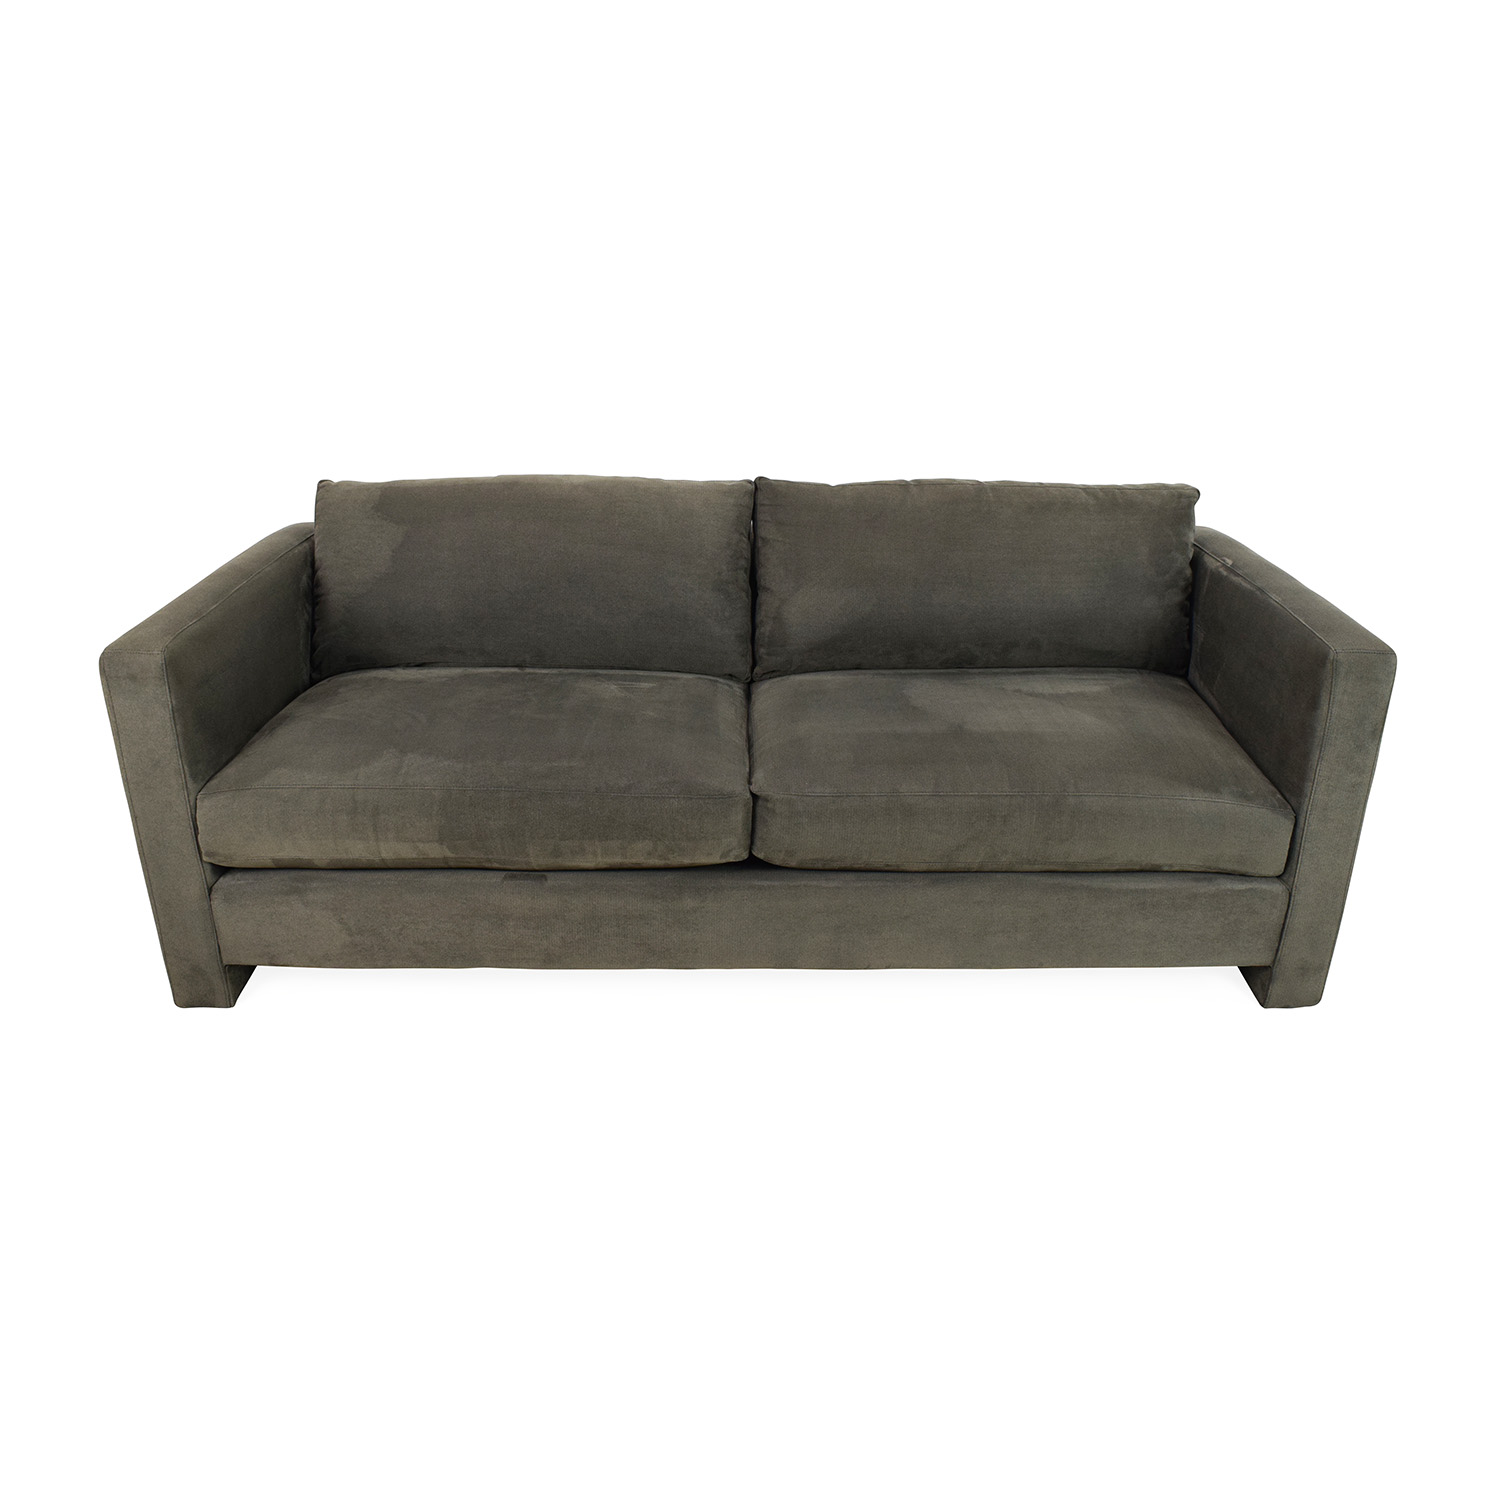 CB2 Gray Sofa sale